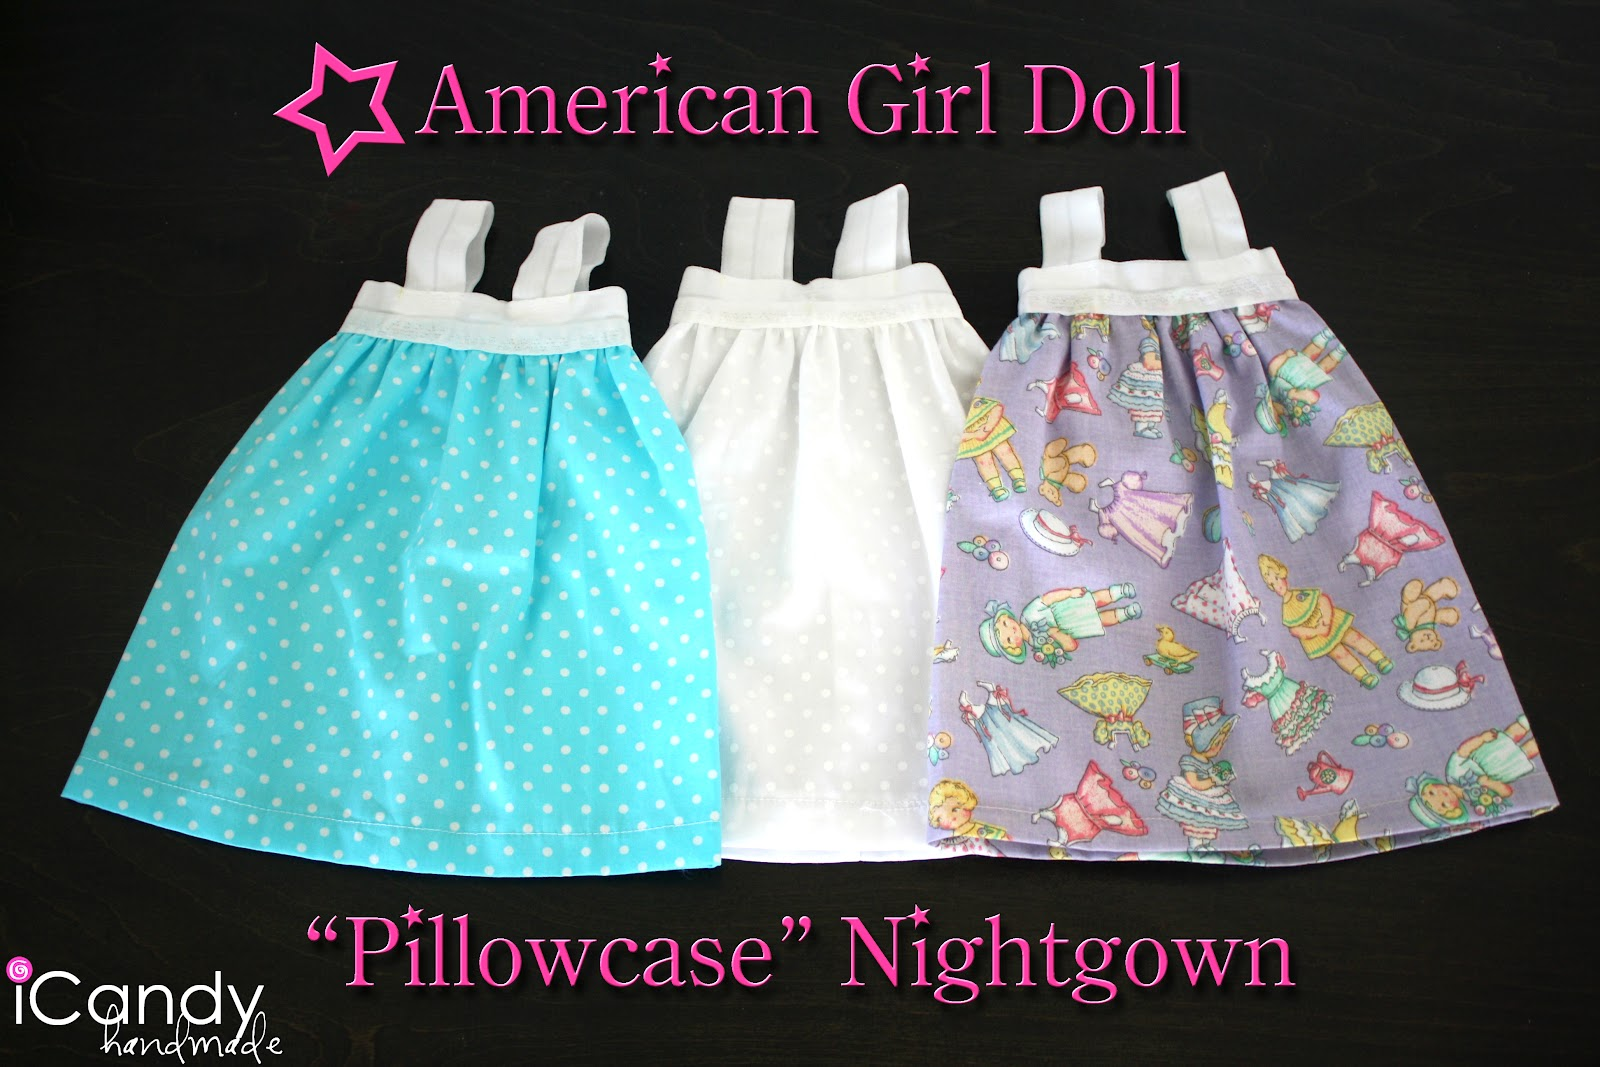 Diy Pillowcase Nightgown: DIY American Girl Doll Pillowcase Nightgown   iCandy handmade,